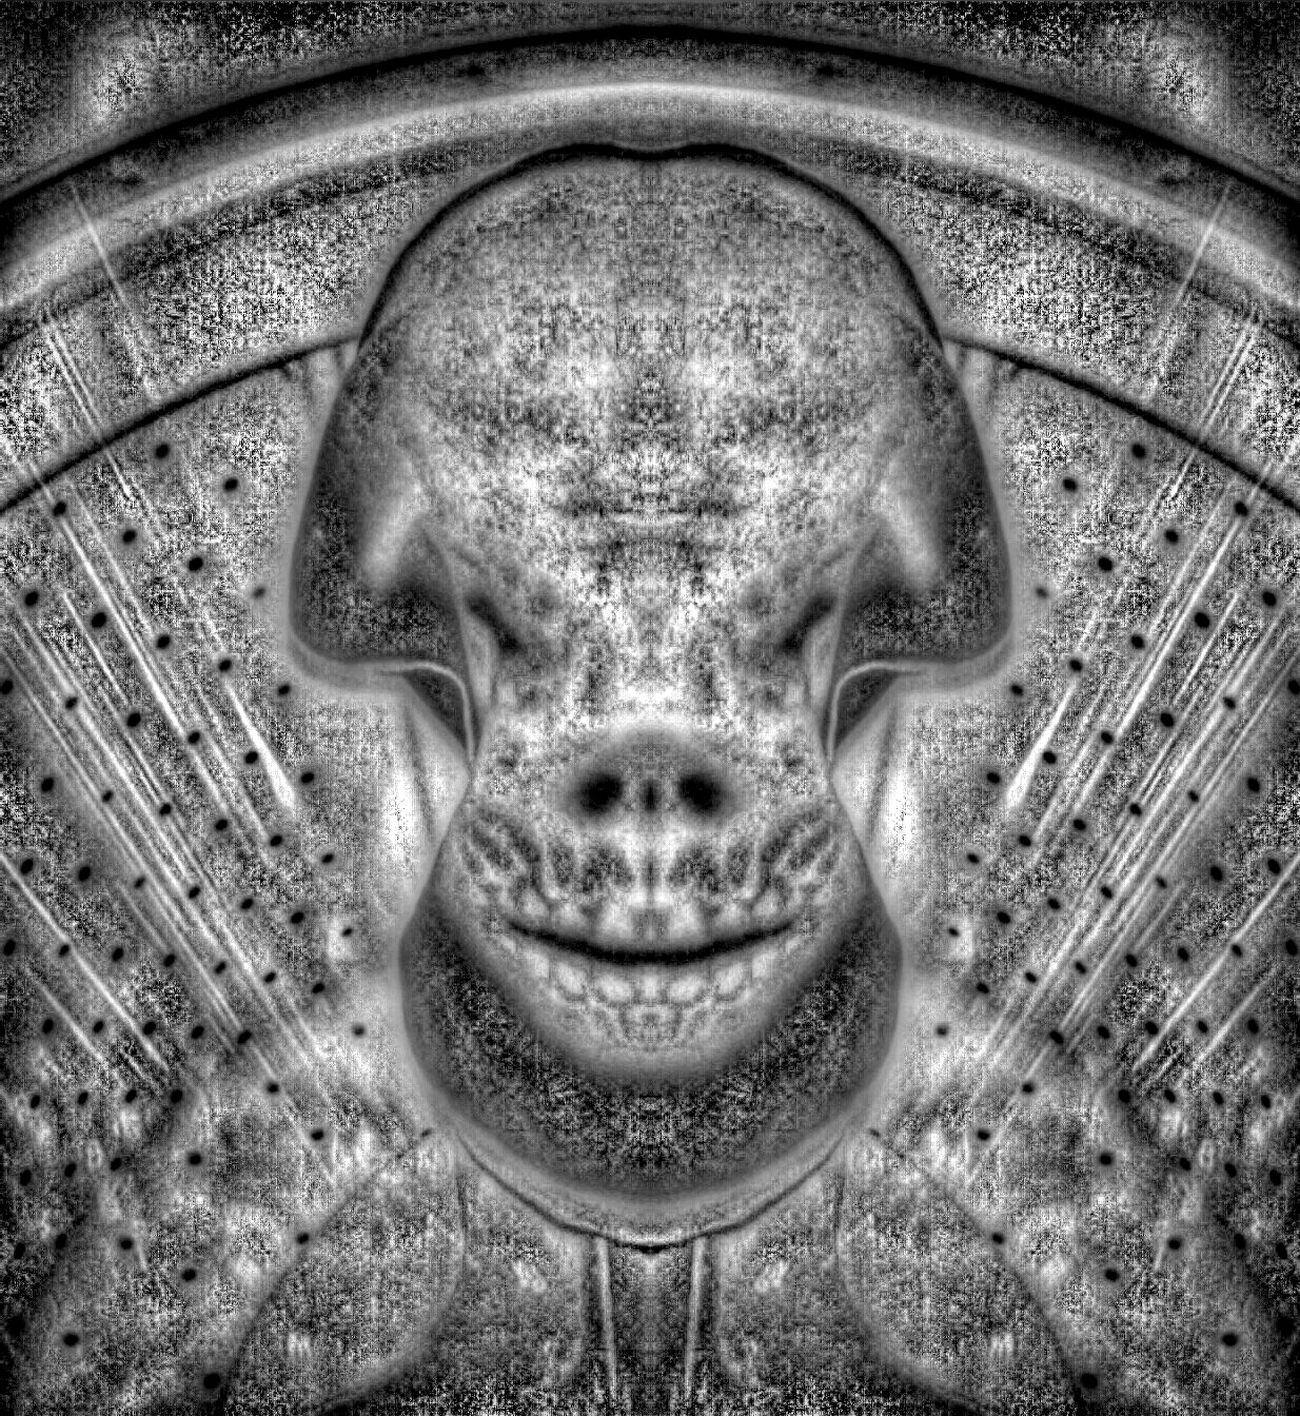 °/\¡₩@§§° Sigil(1 of 3) Chaosmagick Sigil Aleister Crowley Darkart Art, Drawing, Creativity Occult Sorcery Blancoynegro Blackandwhite Noiretblanc EyeEm Best Edits Eye4photography  Mobilephotography Skulls Time From My Point Of View (null) Alien Check This Out Art Dark Photography Macabre Horror Photography Horror Notes From The Underground